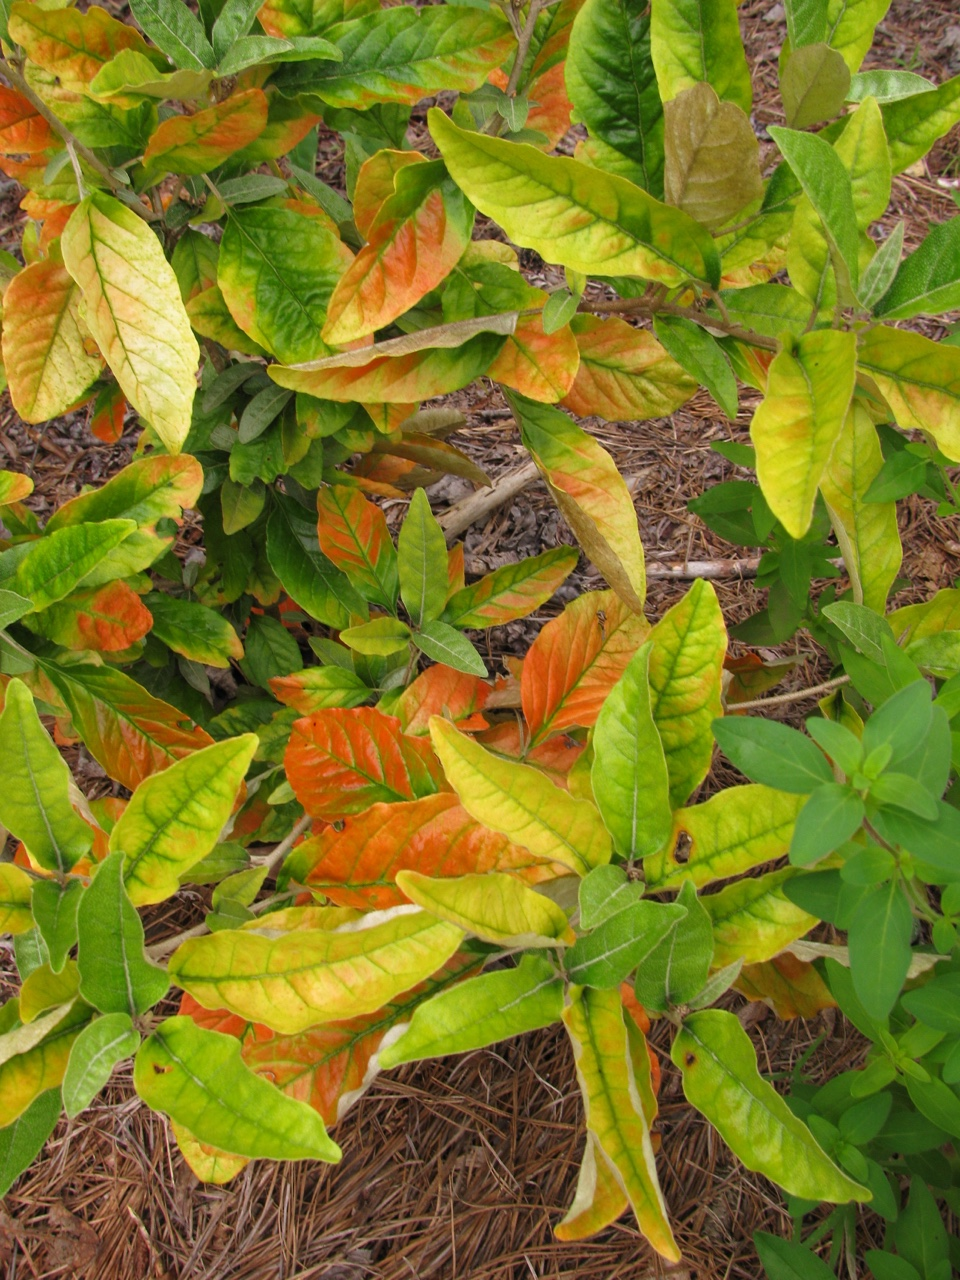 The Scientific Name is Croton alabamensis var. alabamensis. You will likely hear them called Alabama Croton. This picture shows the Fall colors beginning to appear at end of summer of Croton alabamensis var. alabamensis